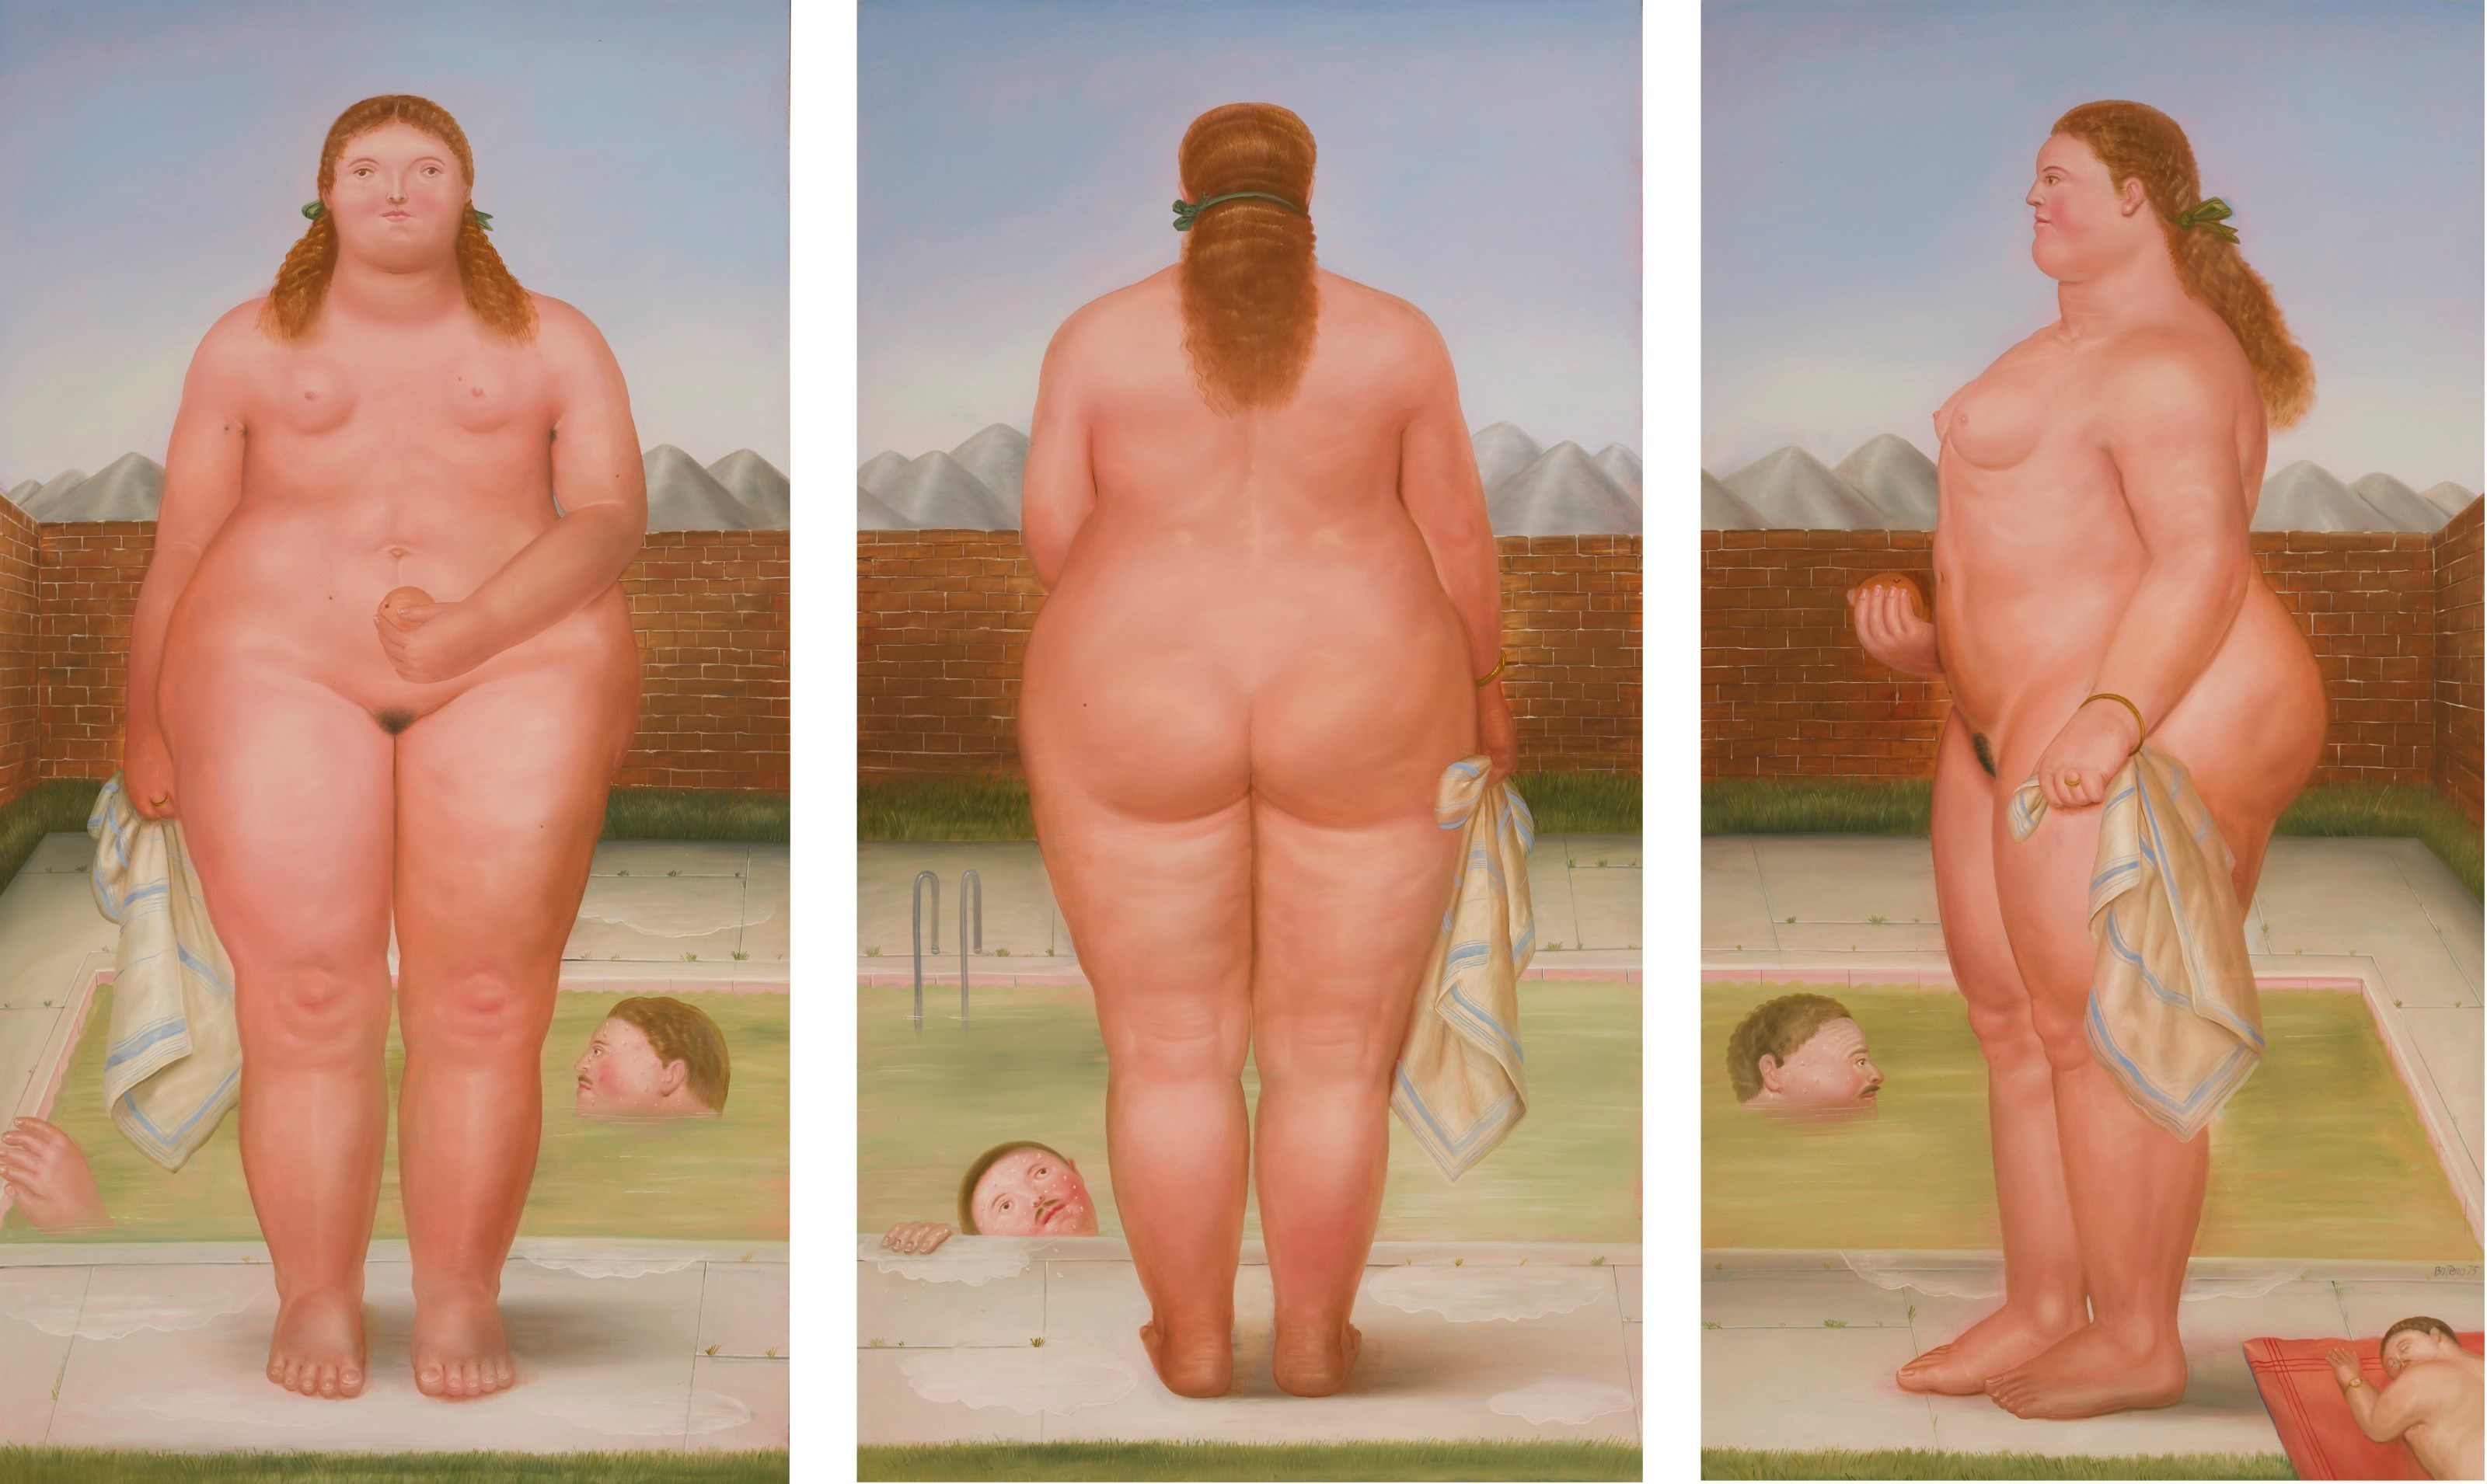 Fernando Botero (b. 1932), The Bather, 1975. Oil on canvas, triptych. Each 93 x 49½ in (236.2 x 126 cm); overall 93 x 148½ in (236.2 x 377.2 cm). Estimate $1,800,000-2,500,000. Offered in Latin American Art on 19 May 2021 at Christie's in New York